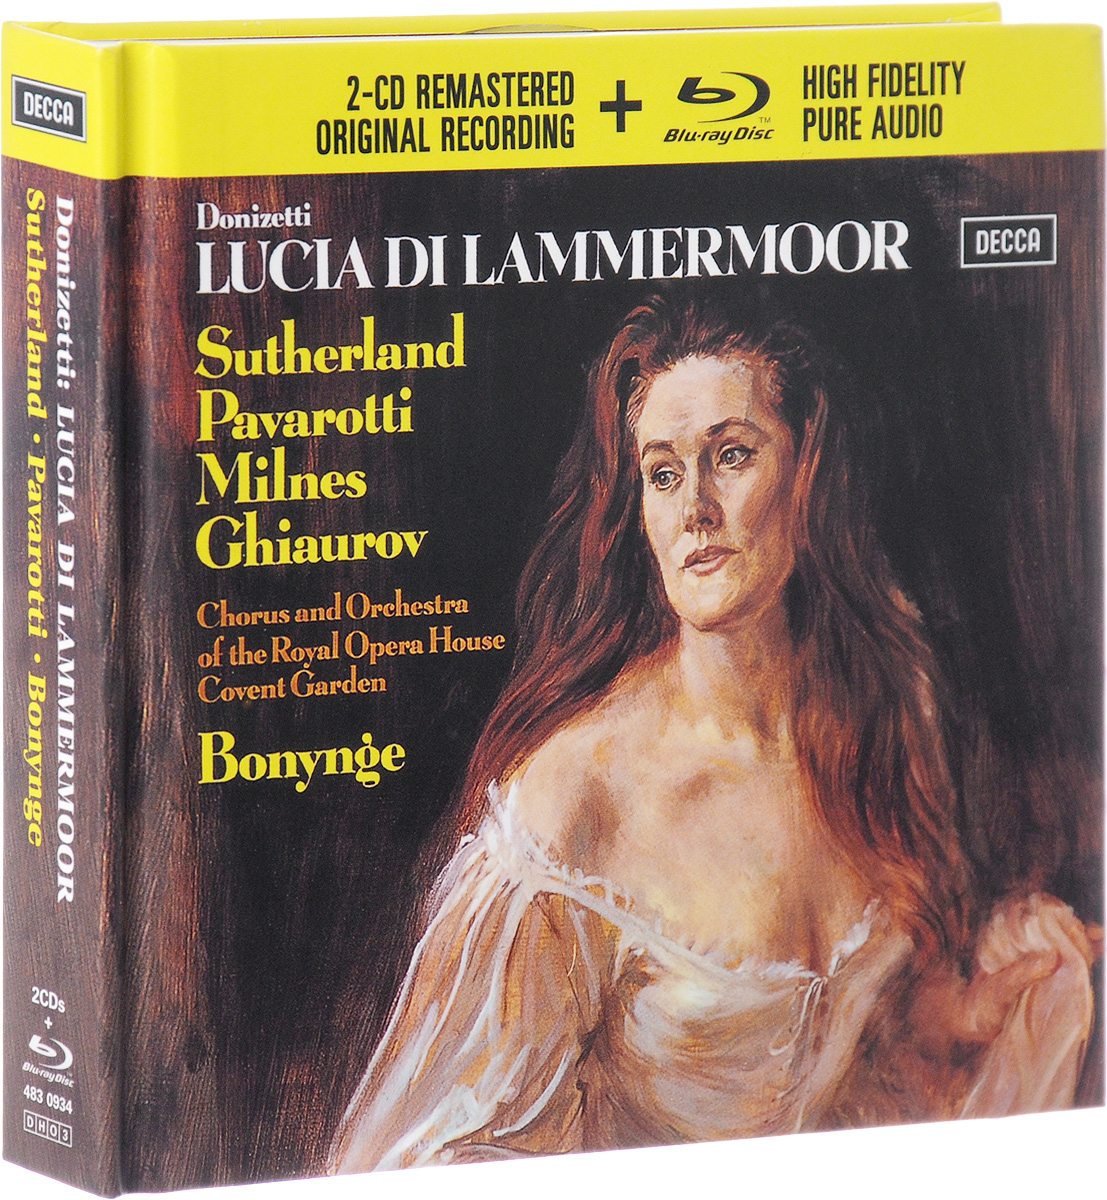 Ричард Бонинг,Chorus Of The Royal Opera House, Covent Garden,Orchestra Of The Royal Opera House Covent Garden,Дуглас Робинсон Richard Bonynge. Donizetti. Lucia Di Lammermoor (2 CD + Blu-ray) джоан сазерленд лучано паваротти maria casula english chamber orchestra ричард бонинг donizetti l elisir d amore sutherland pavarotti eco bonynge 2 cd blu ray audio